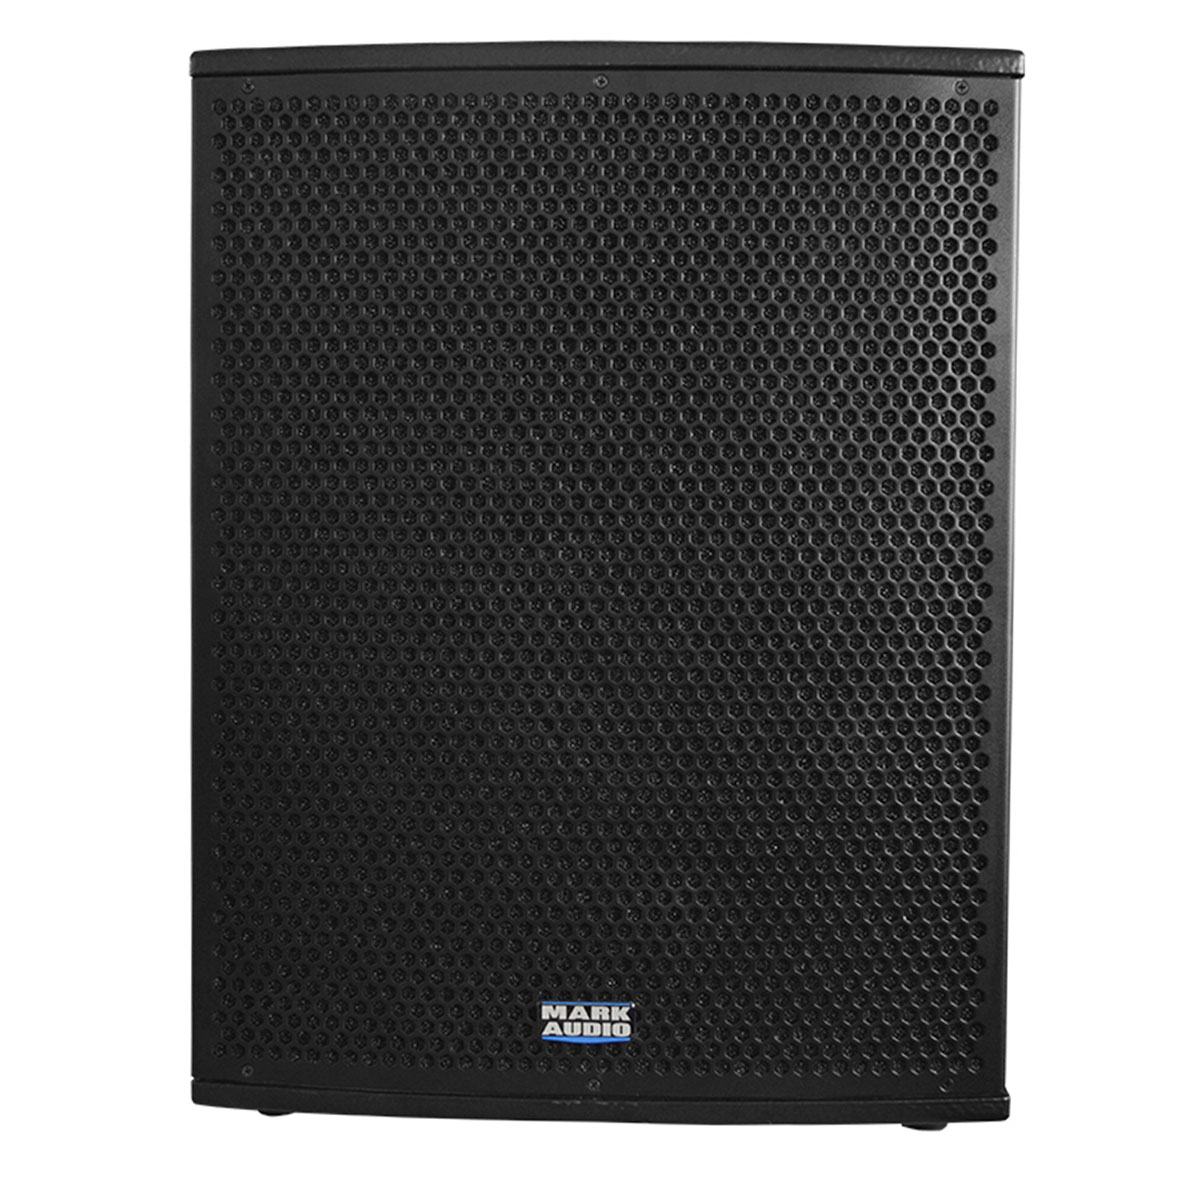 CA1200 - Caixa Ativa 250W c/ Player USB CA 1200 - Mark Audio